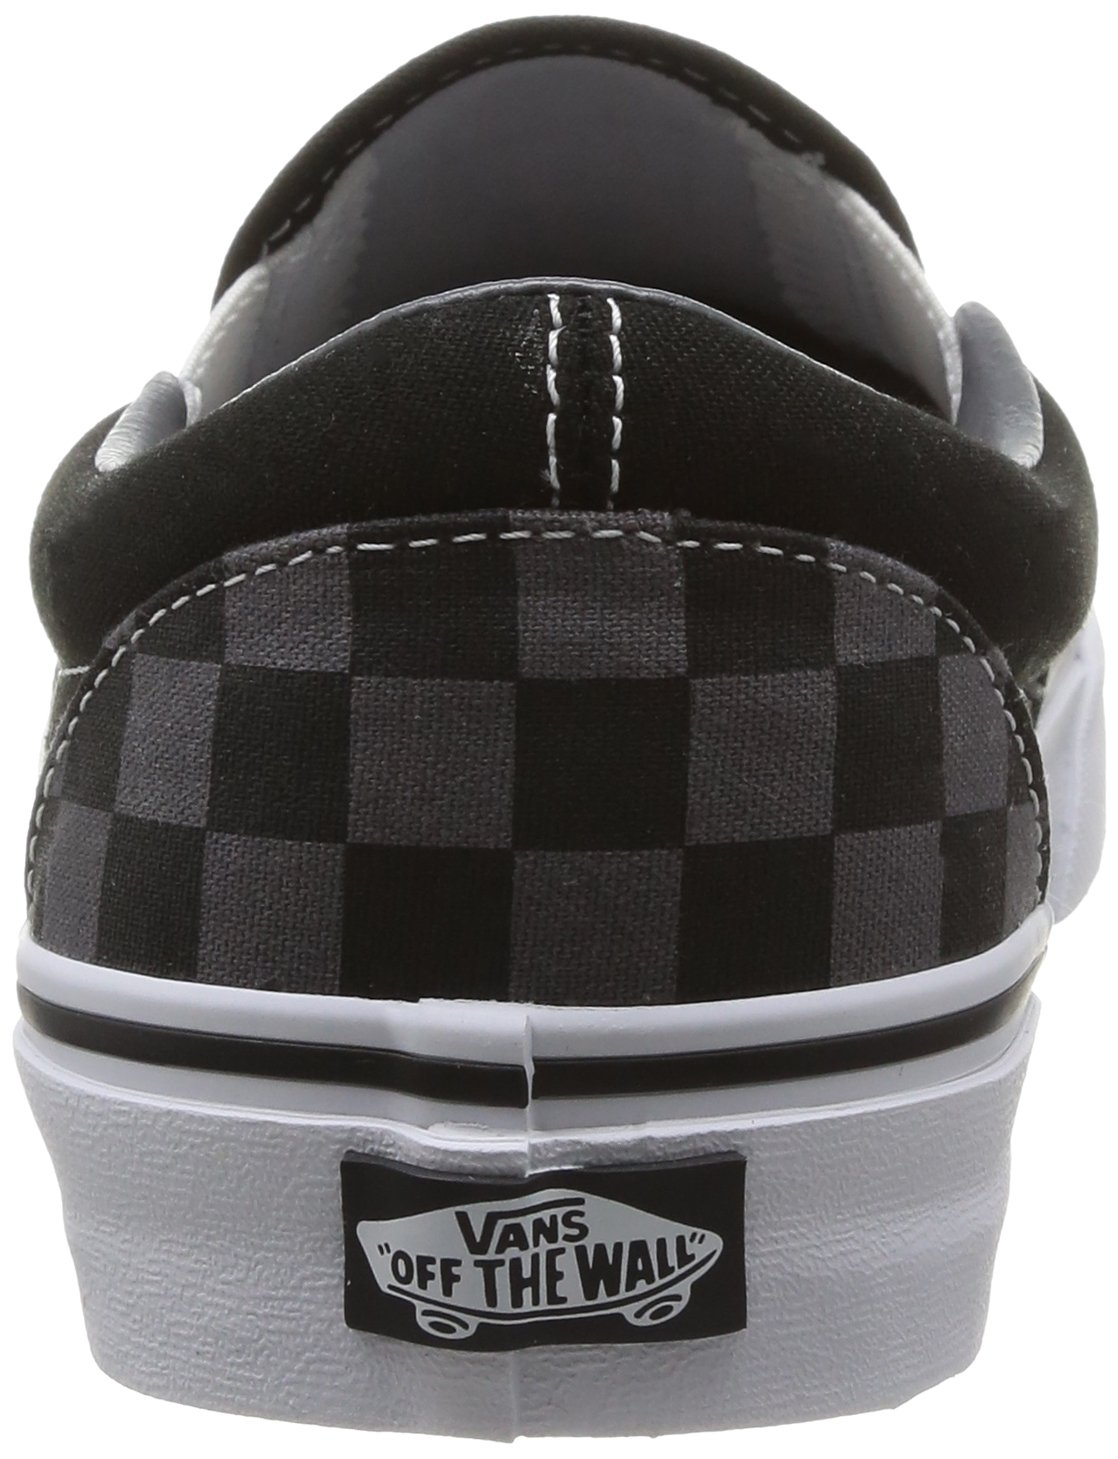 Vans Unisex Classic (Checkerboard) Slip-On Skate Shoe B000PGPFGS 43 M EU / 11.5 B(M) US Women / 10 D(M) US Men|Black/Pewter Checkerboard